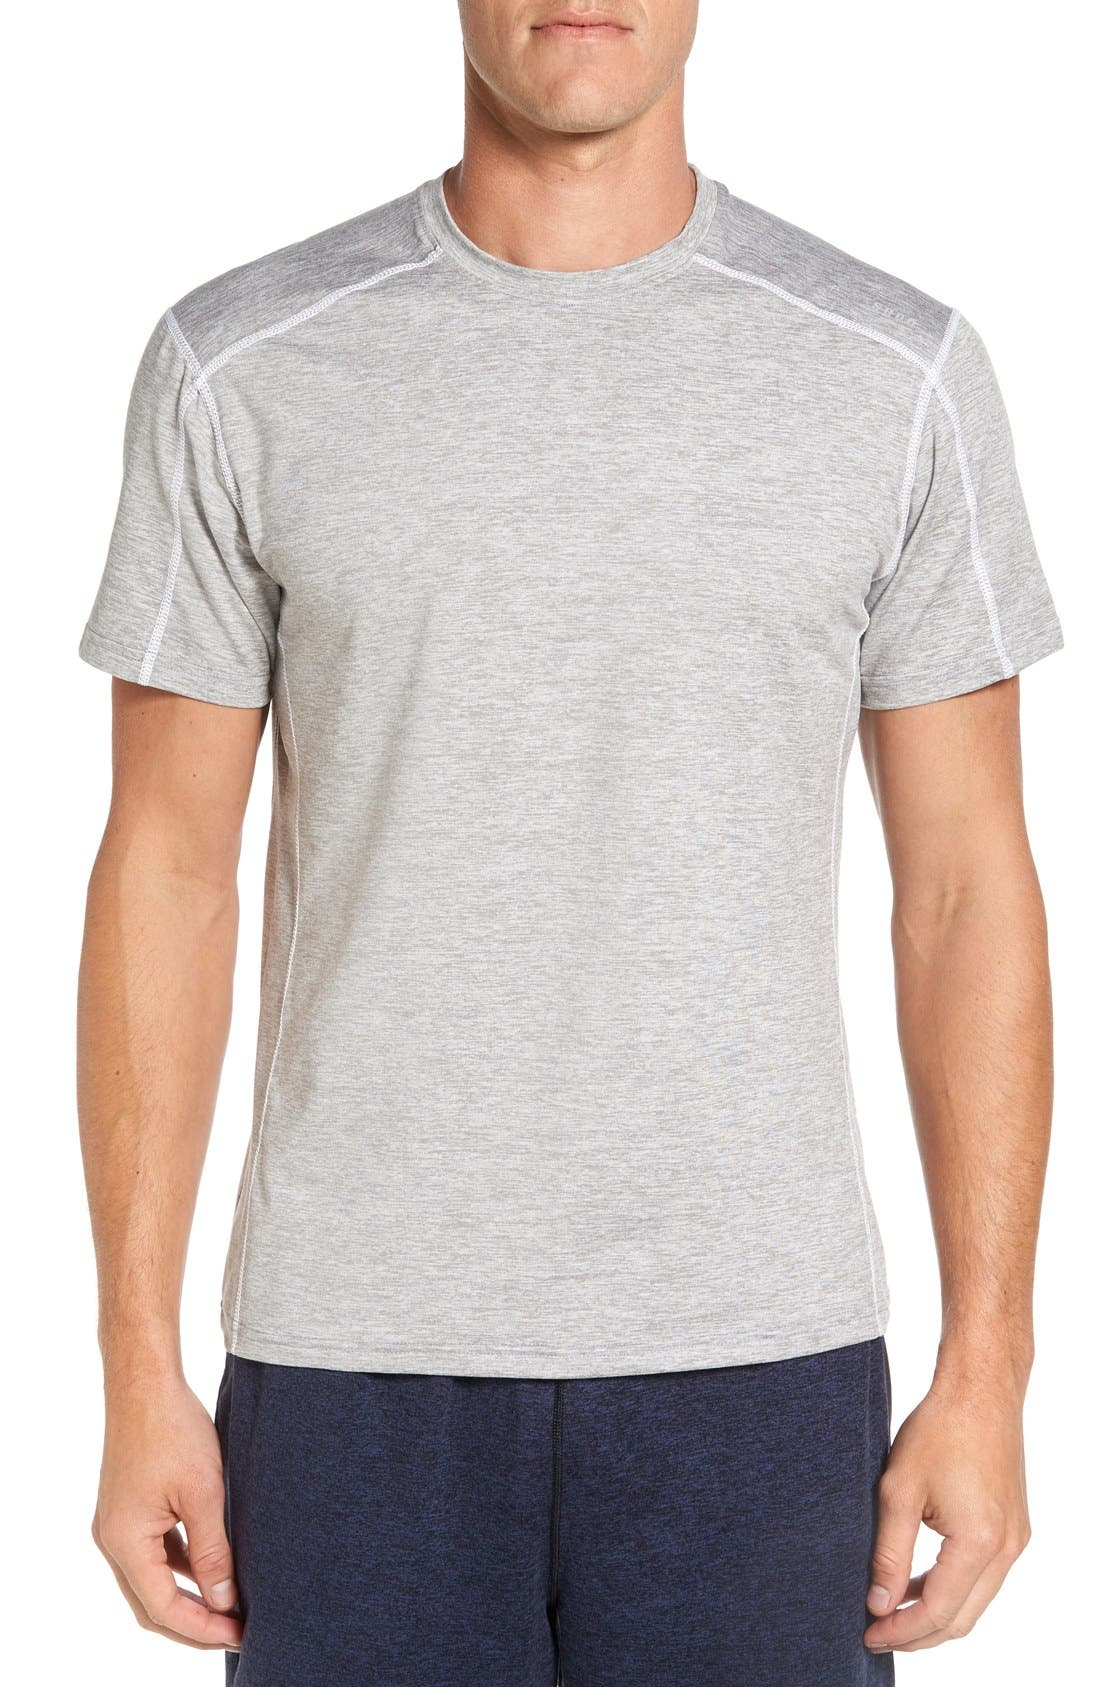 Main Image - SODO 'Cooldown' Moisture Wicking Training T-Shirt